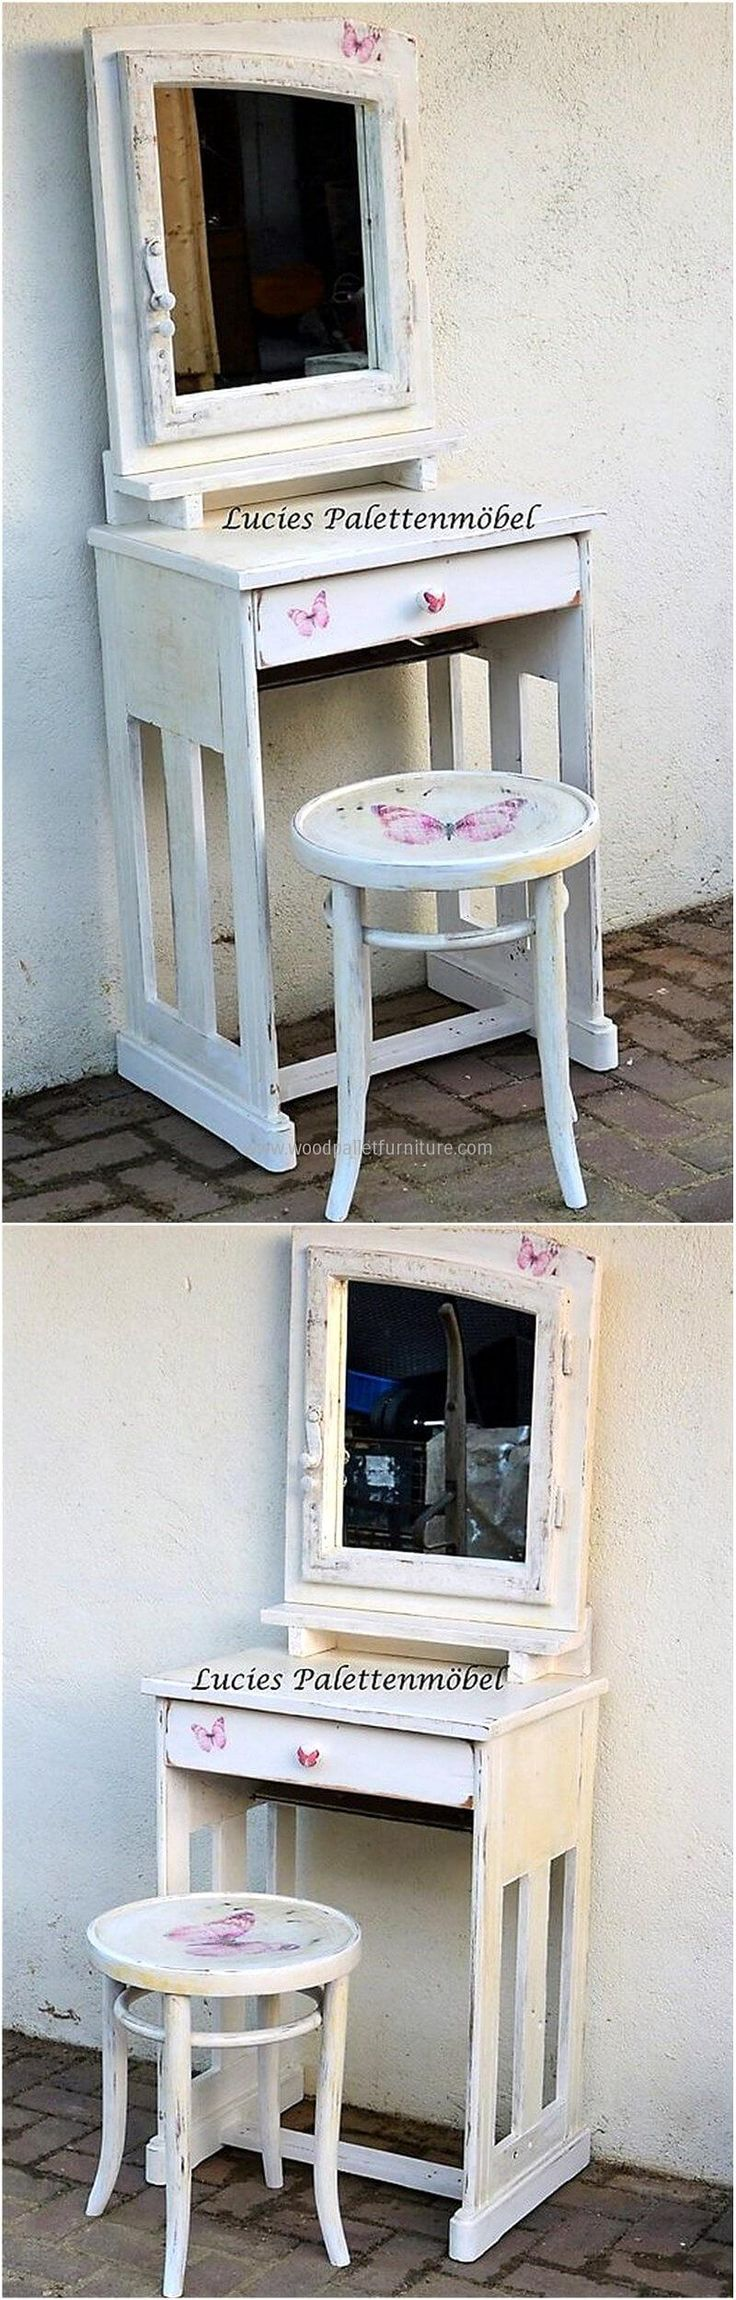 DIY Ideas With Used Old Wooden Pallets